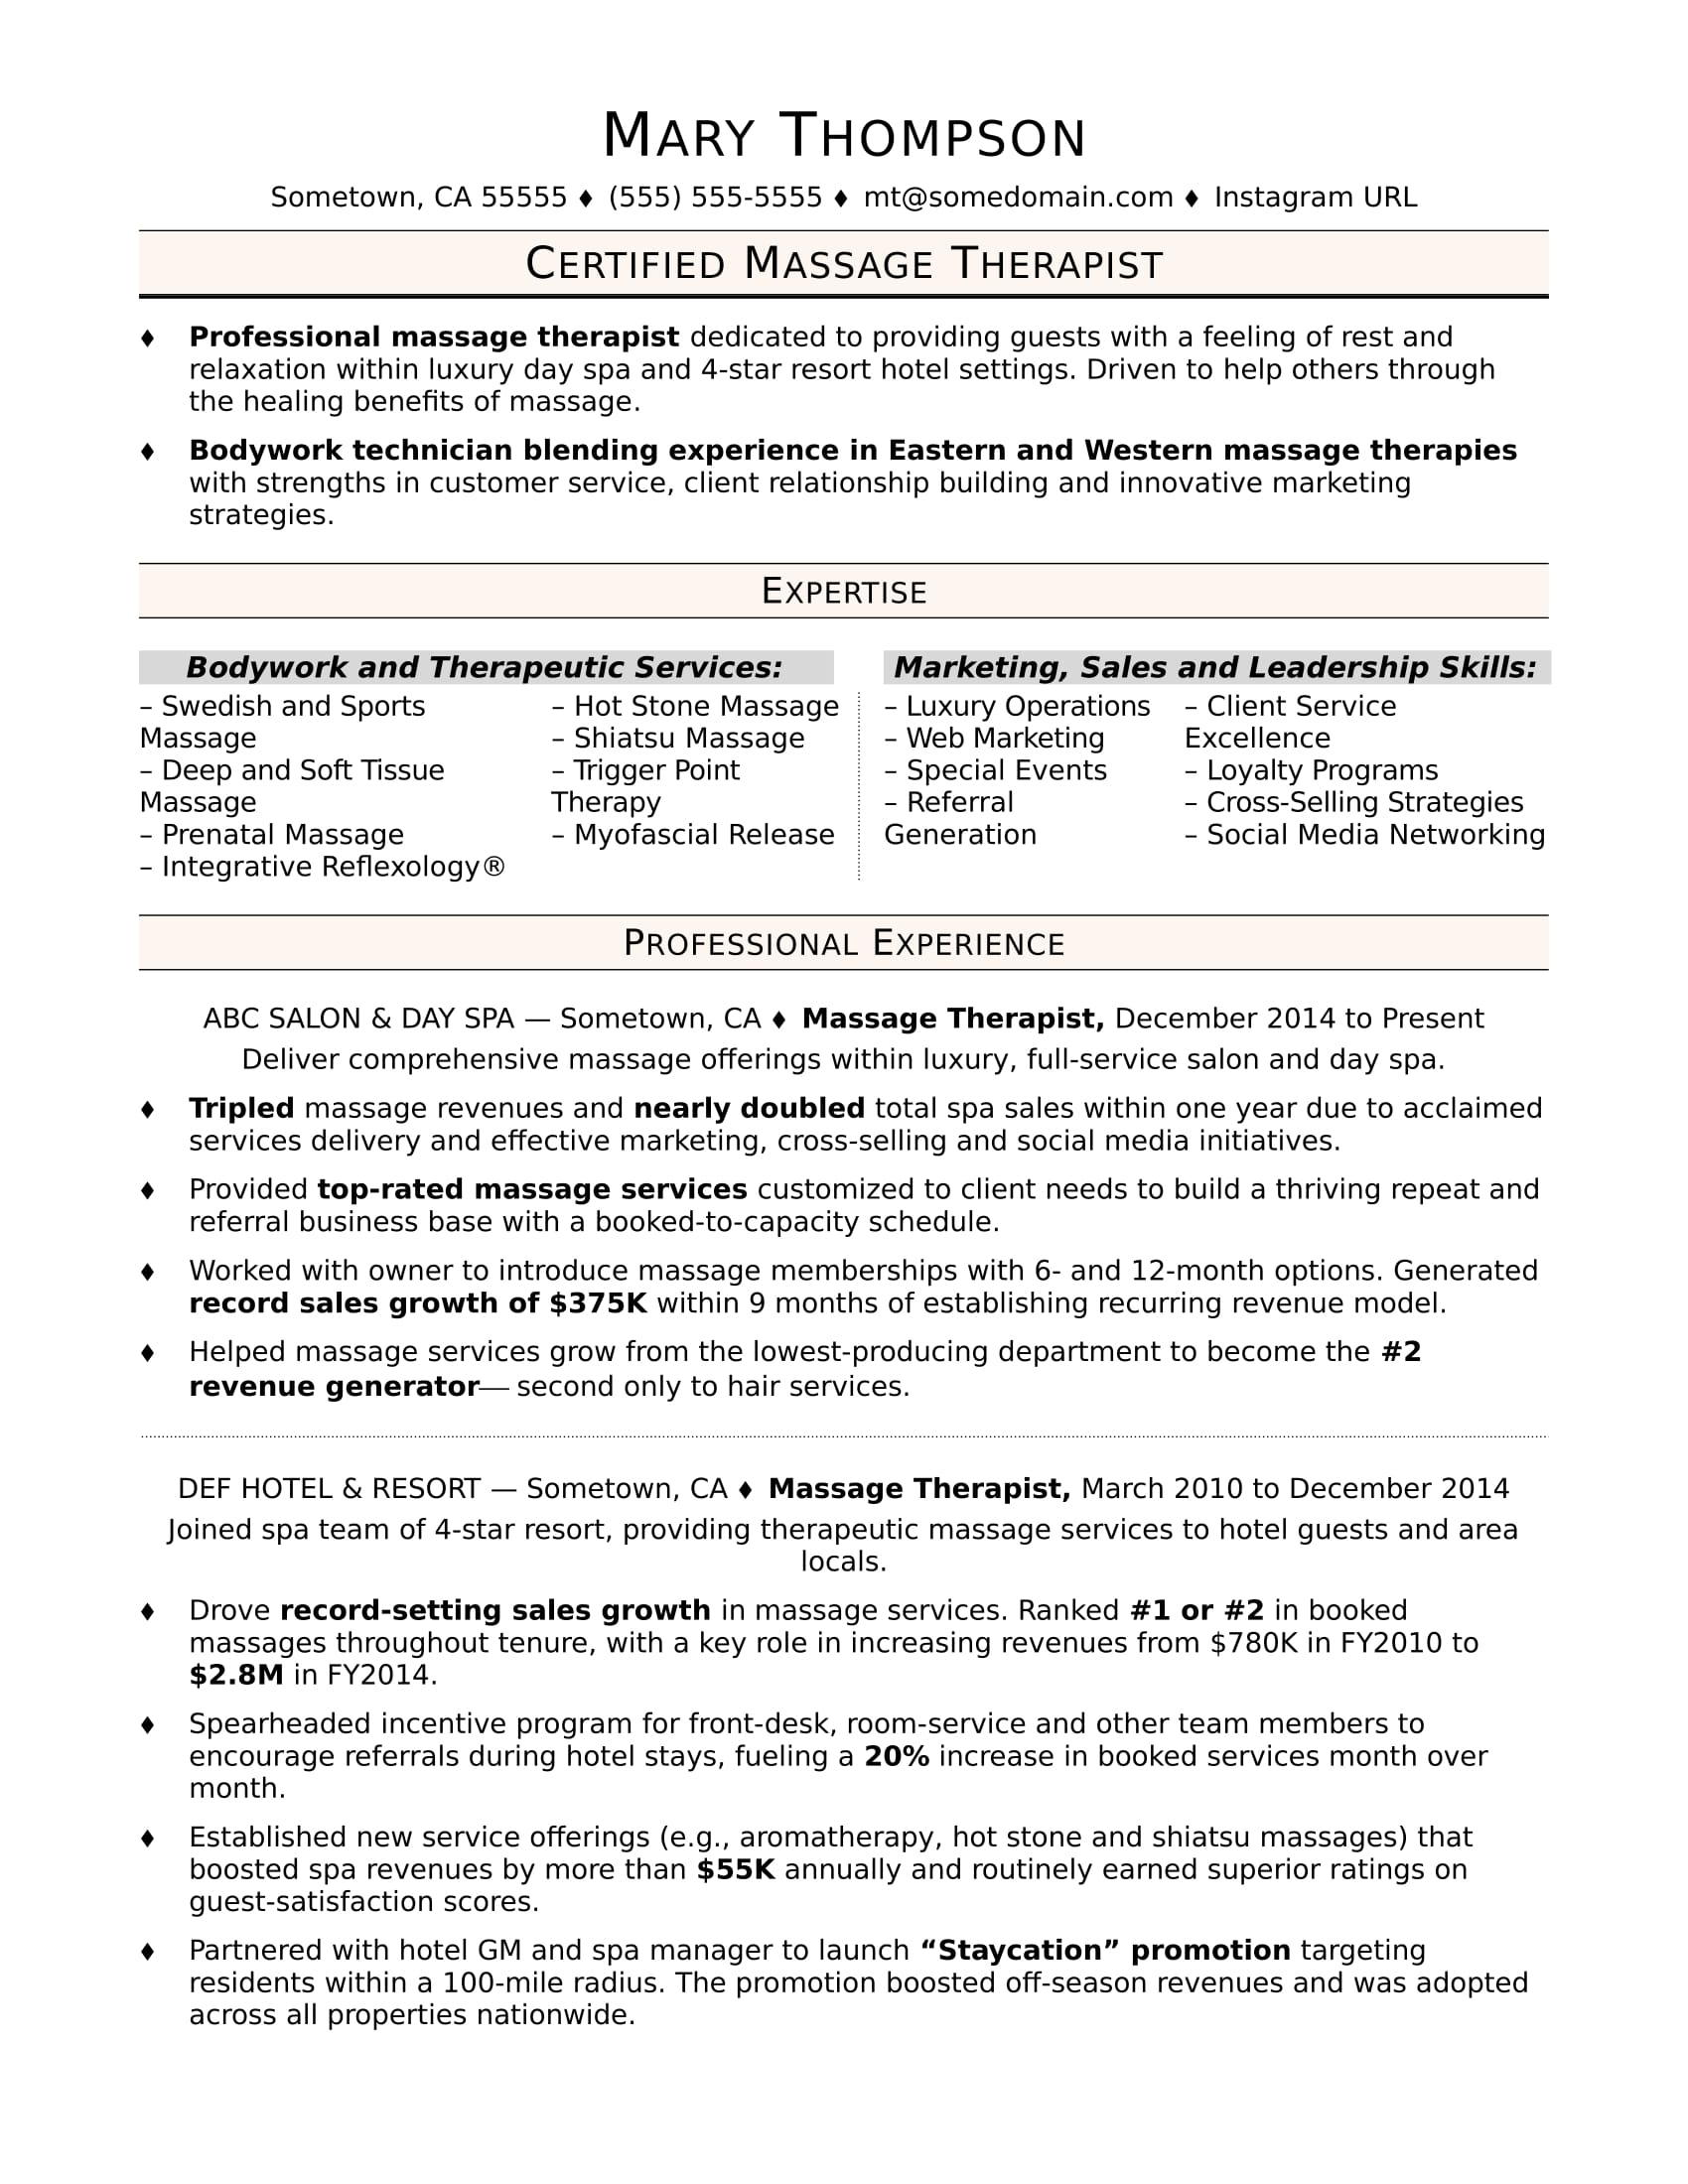 massage therapist resume sample - Resume Examples For Massage Therapist